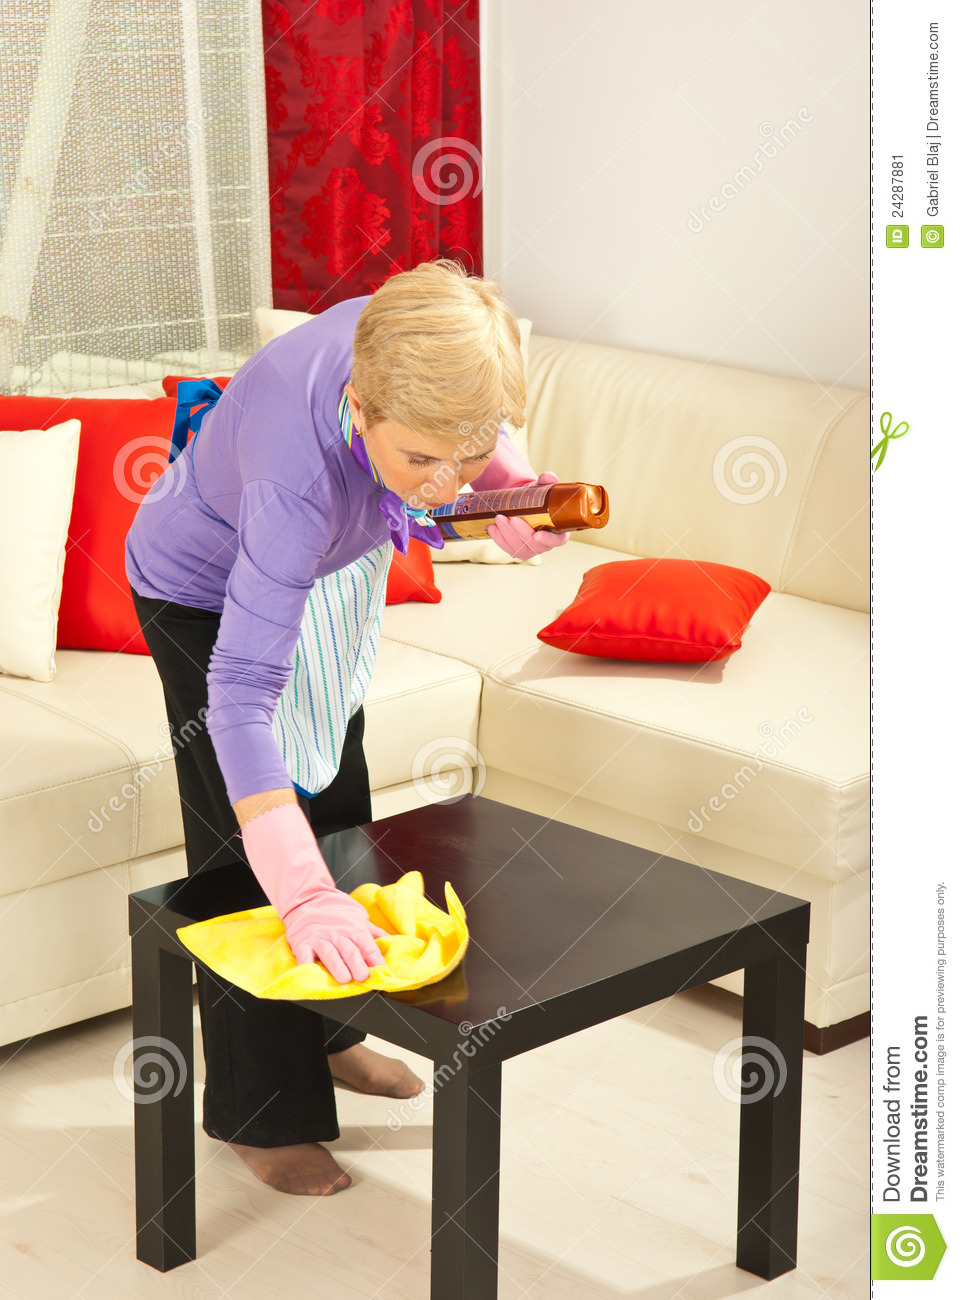 More similar stock images of ` Woman wipe dust on the table `